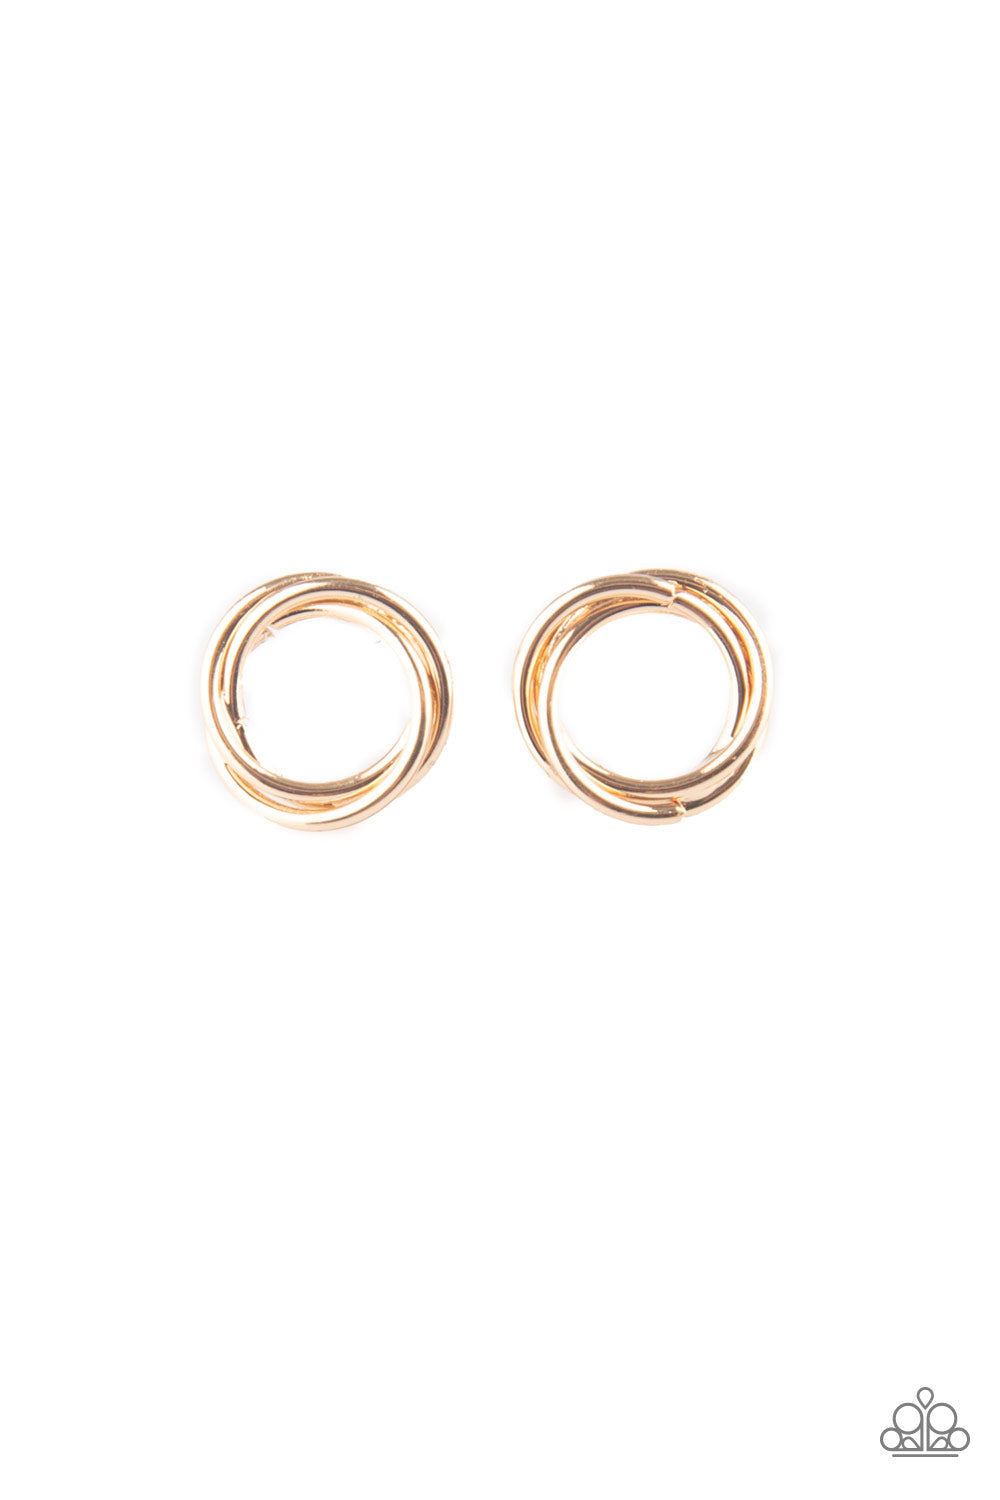 Paparazzi Simple Radiance - Gold Earrings